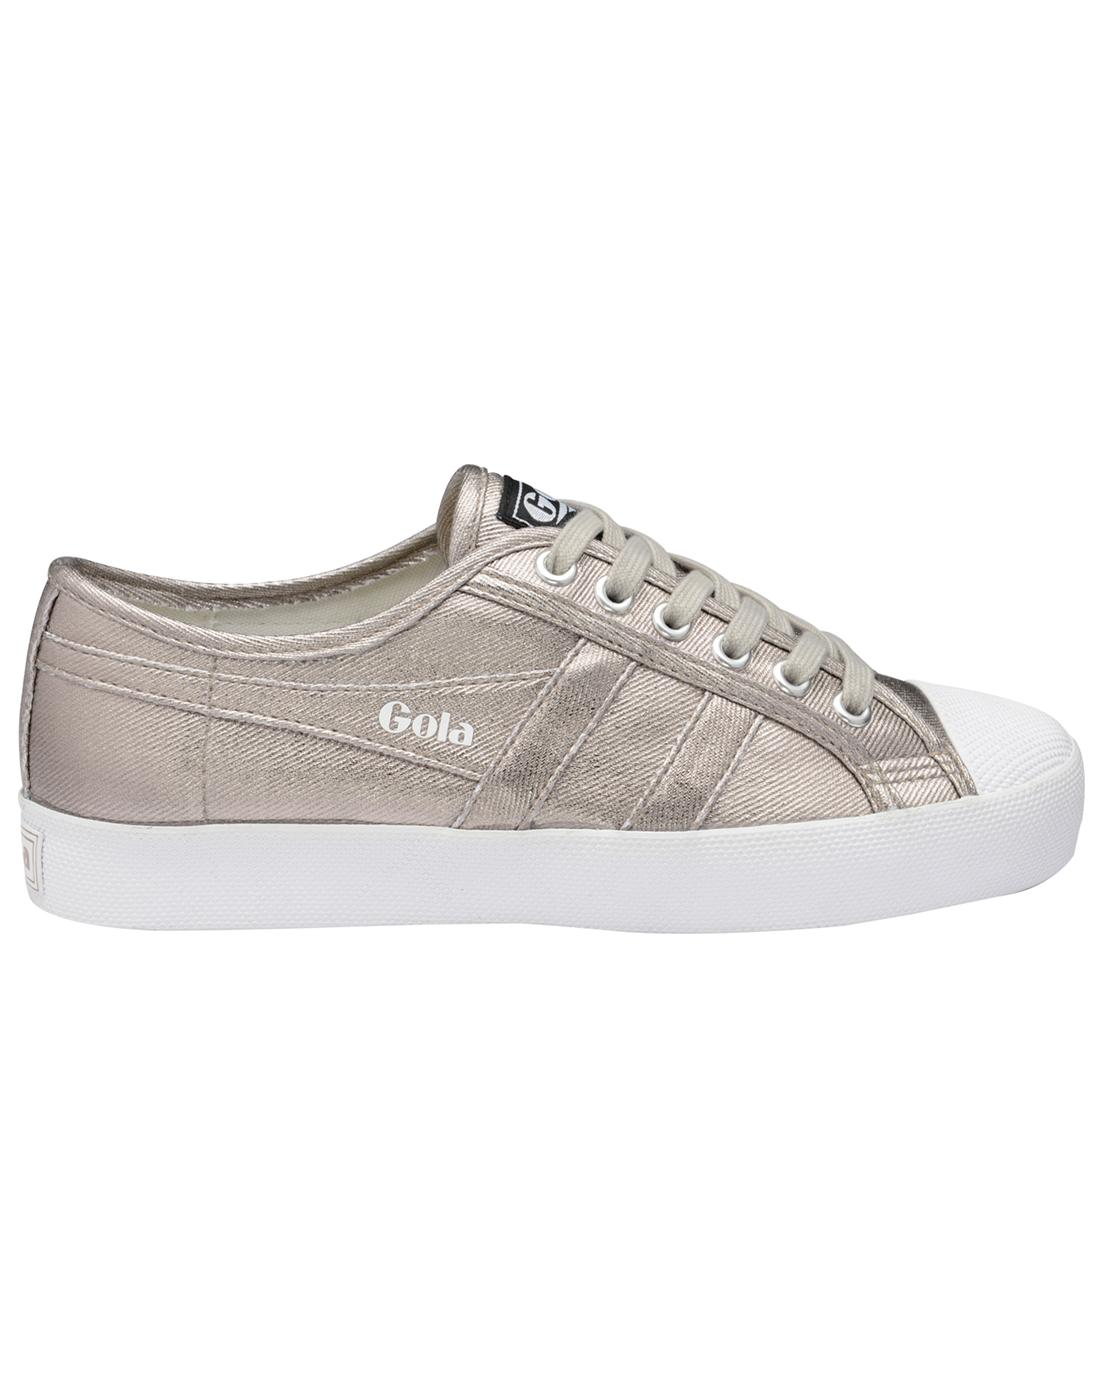 Coaster Metallic GOLA Womens Retro Canvas Trainers